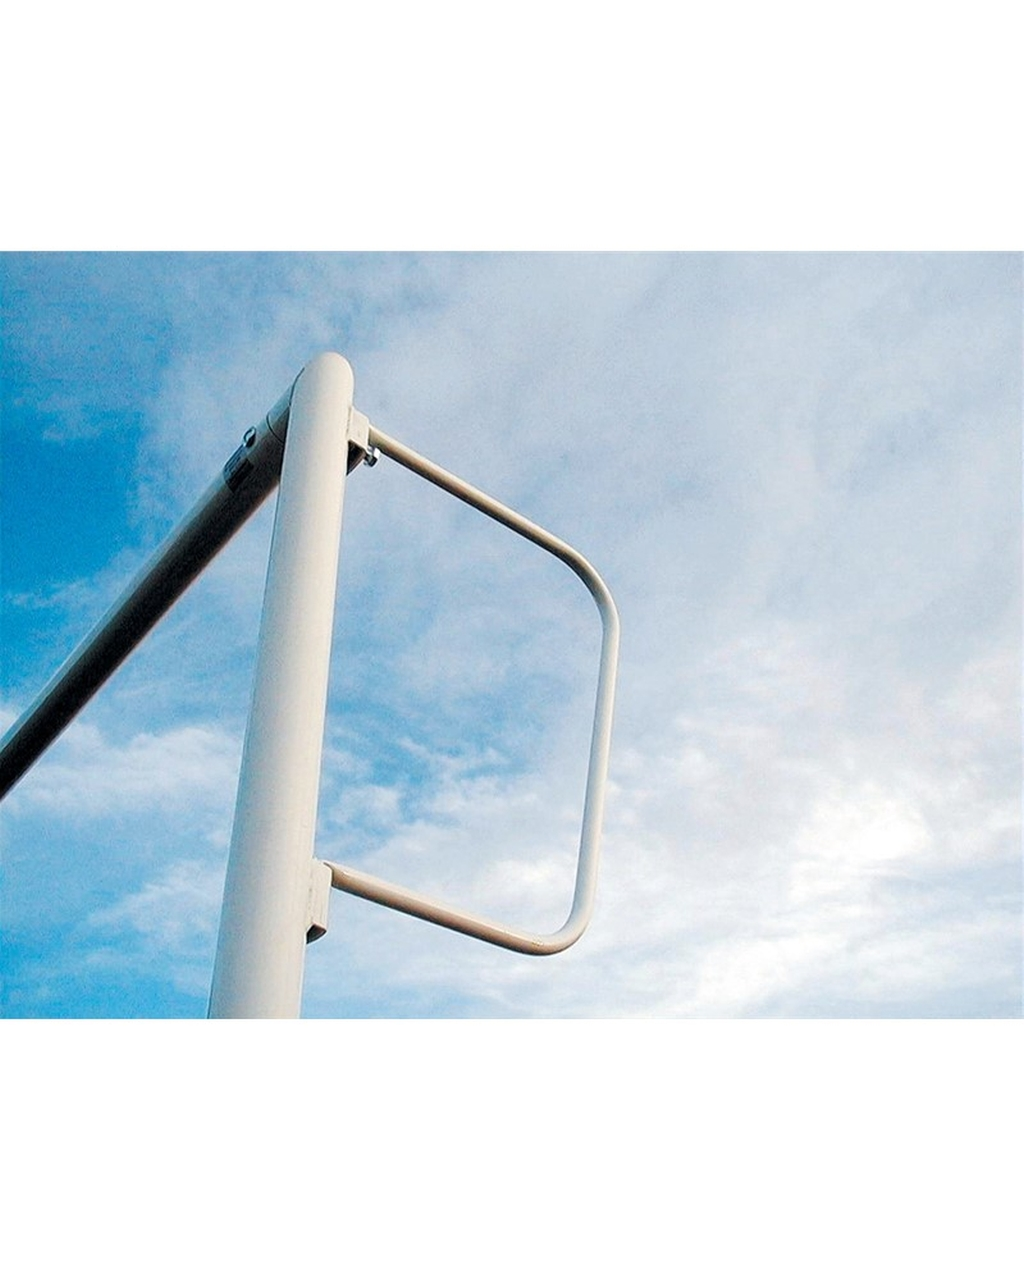 Mini Socketed Goal Net Supports